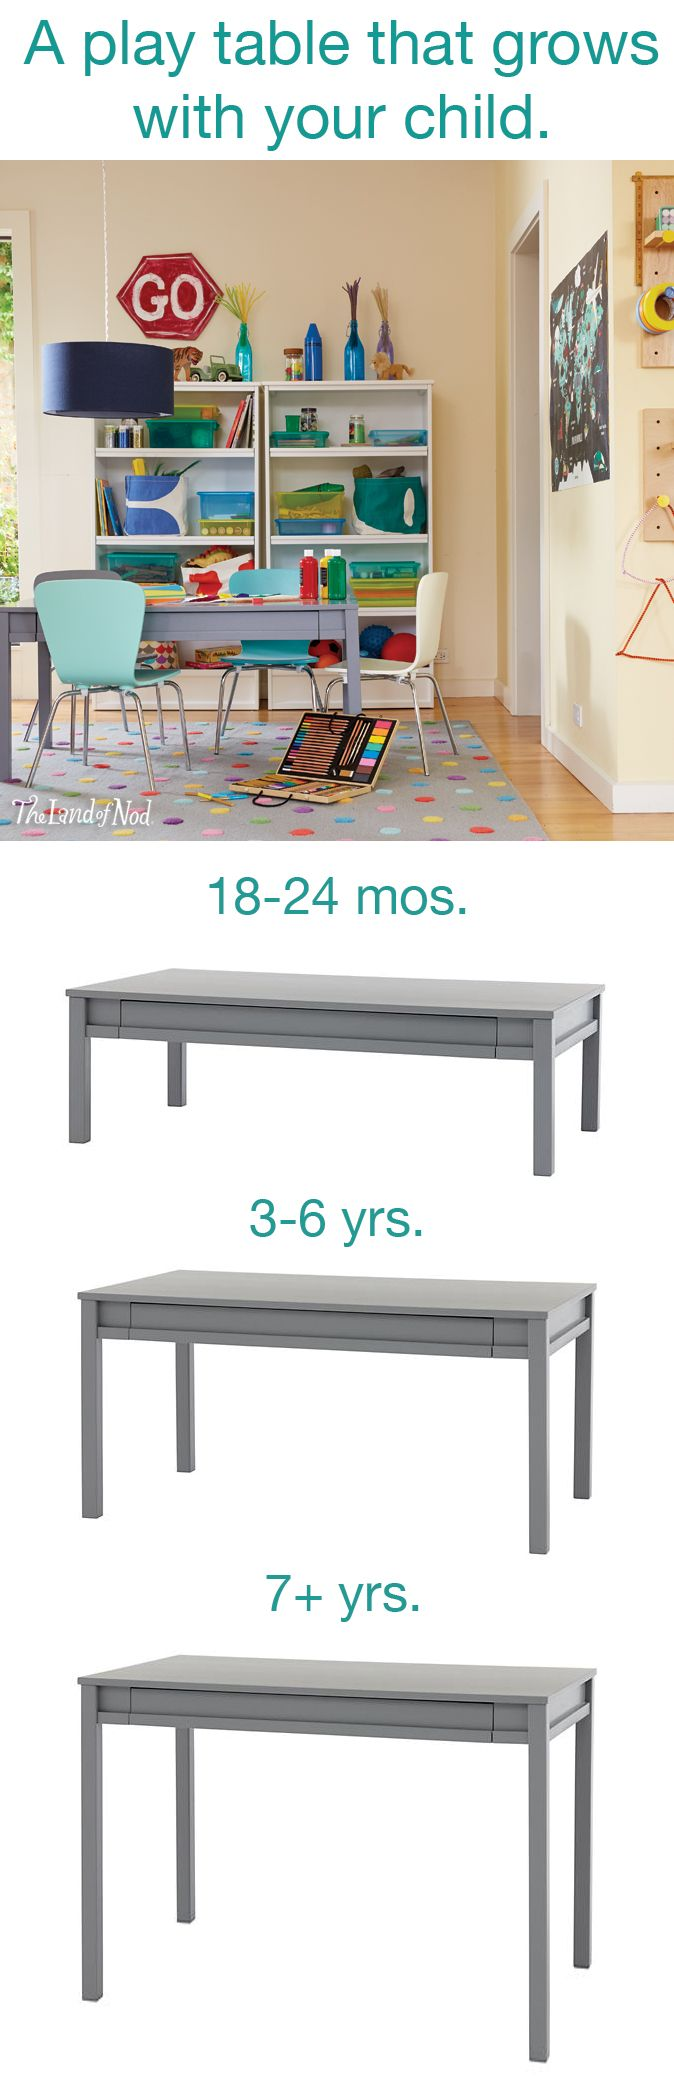 """The Land of Nod's exclusive Extracurricular Activity Table is designed to grow as your child grows. The 15"""" height is perfect for toddlers to stand at or use as a train table. Then switch out to the 23"""" legs, add play chairs, and you have the perfect size for school age kids to use as an art table or for games. Then, at around age 7, swap the legs again, and you have a full-size desk that accommodates an adult-sized chair."""